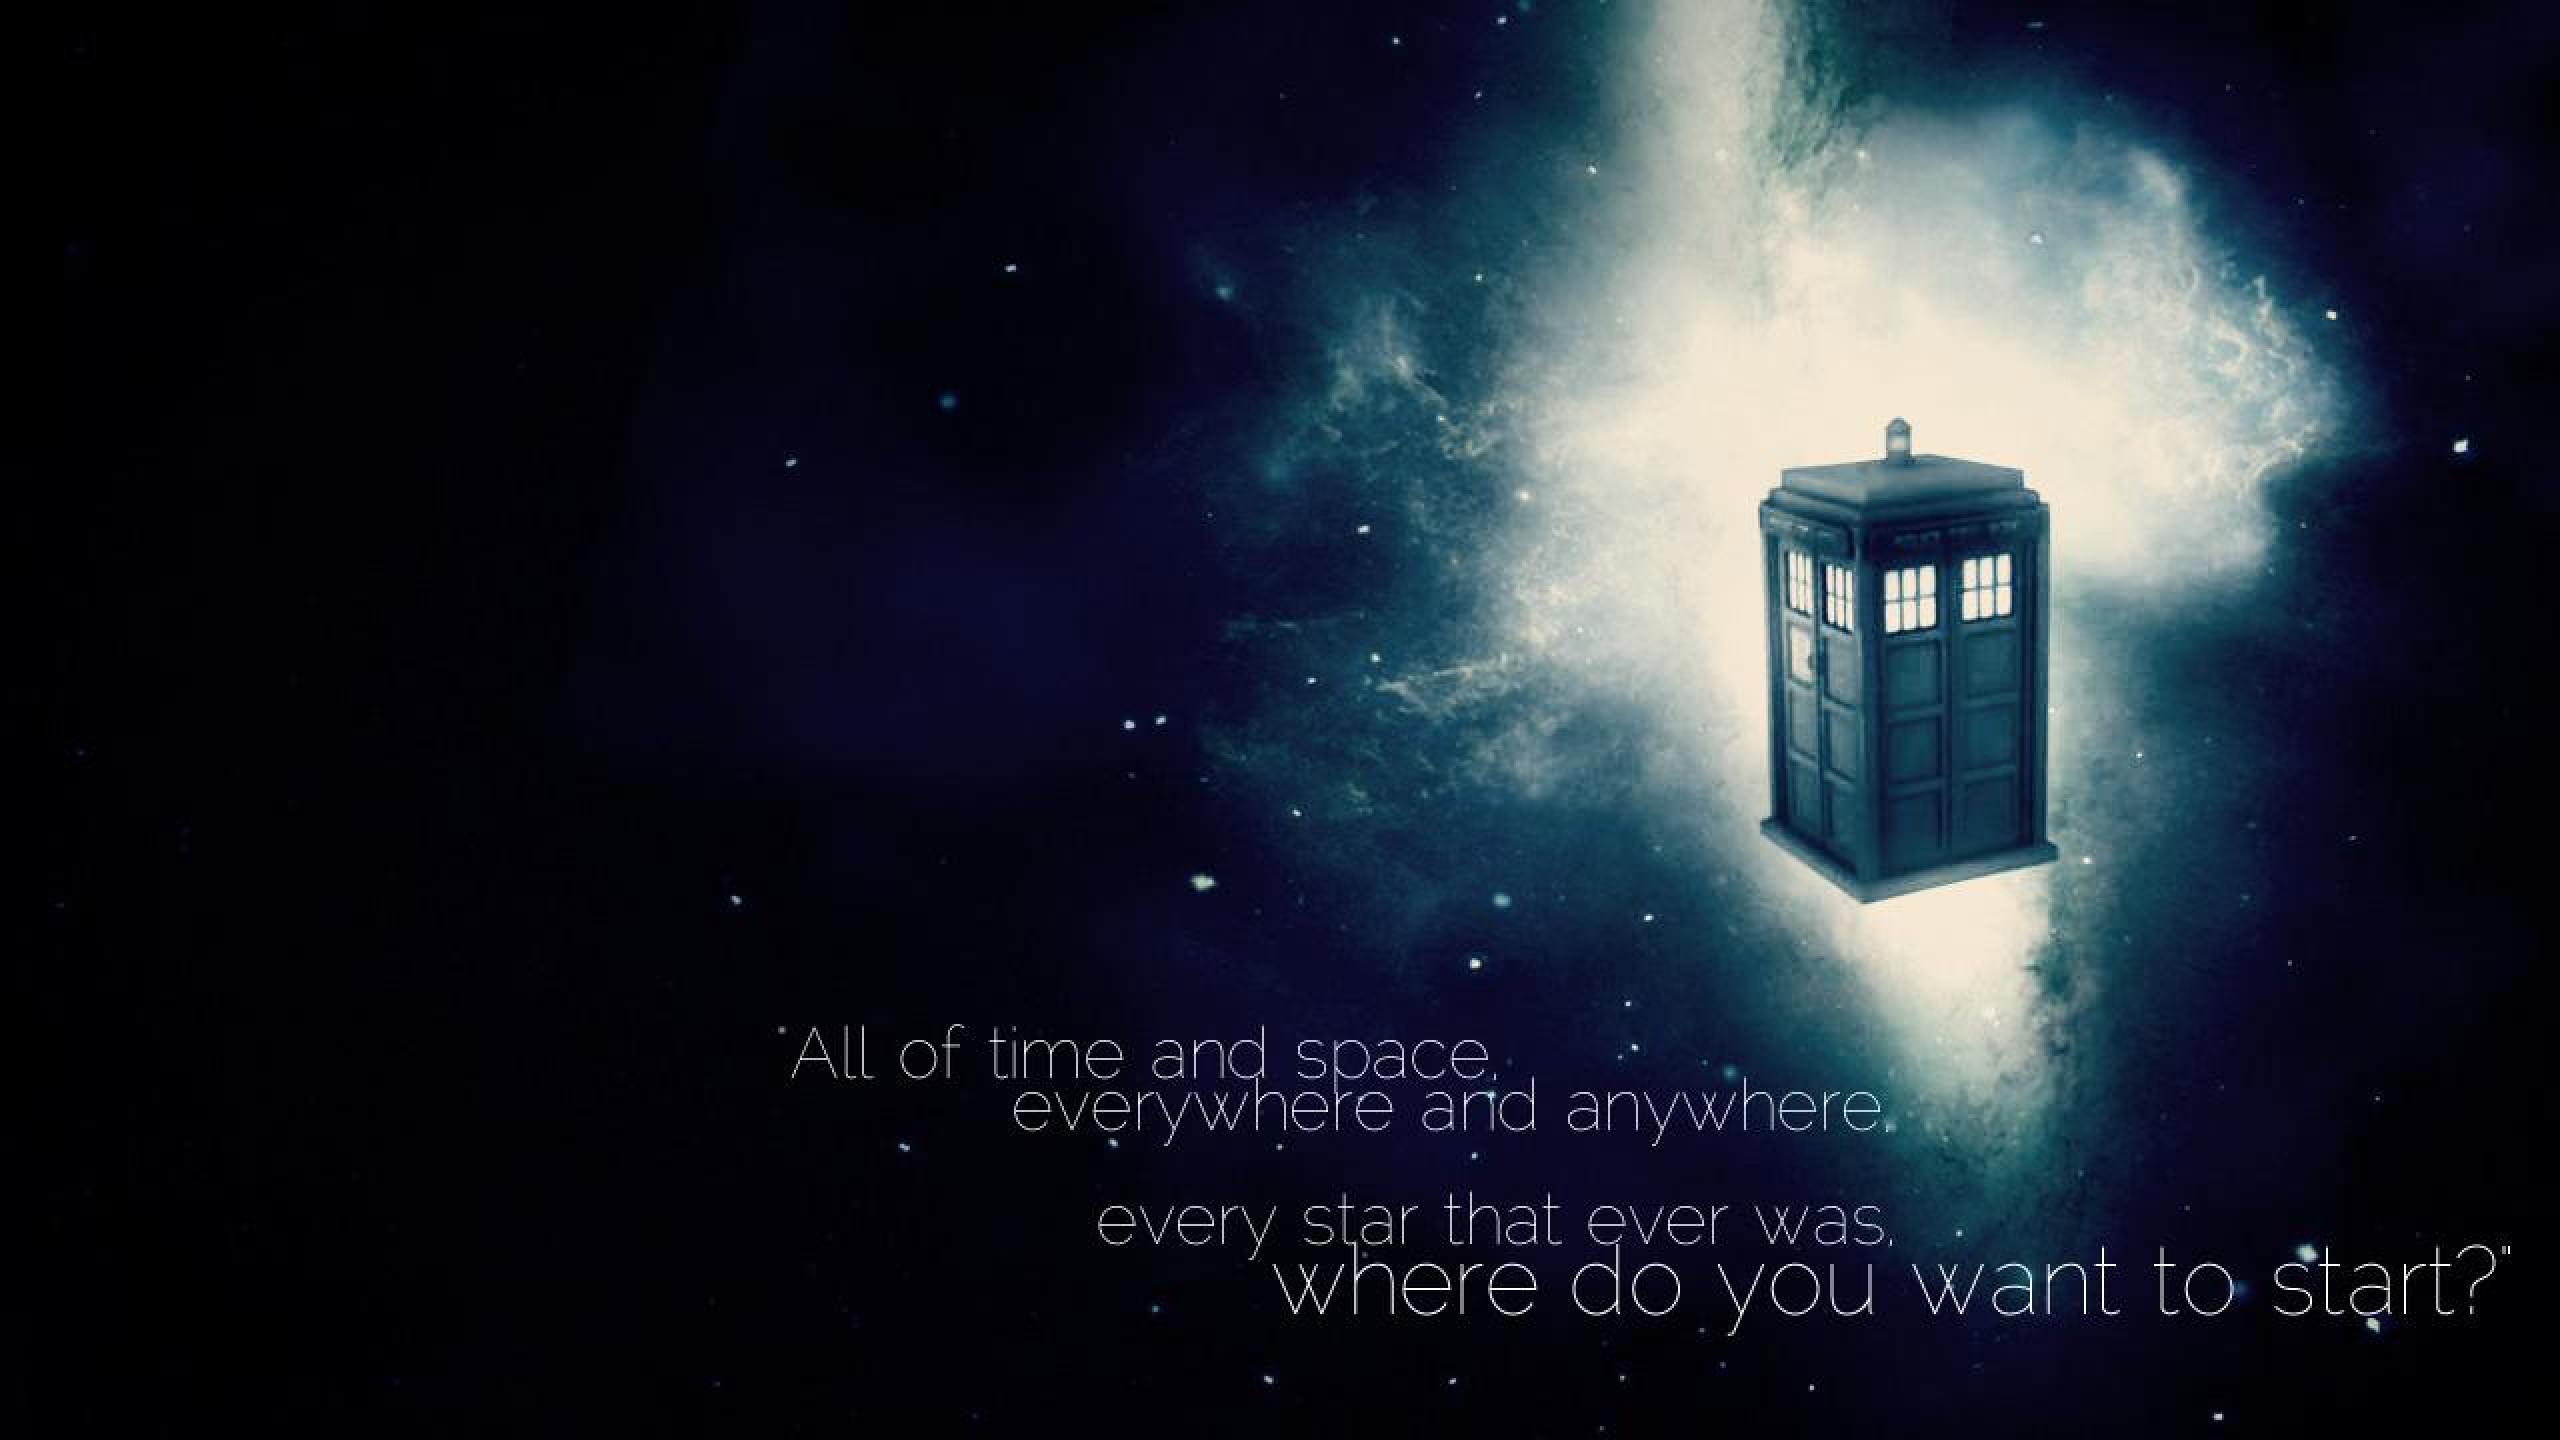 Wallpaper Doctor Who